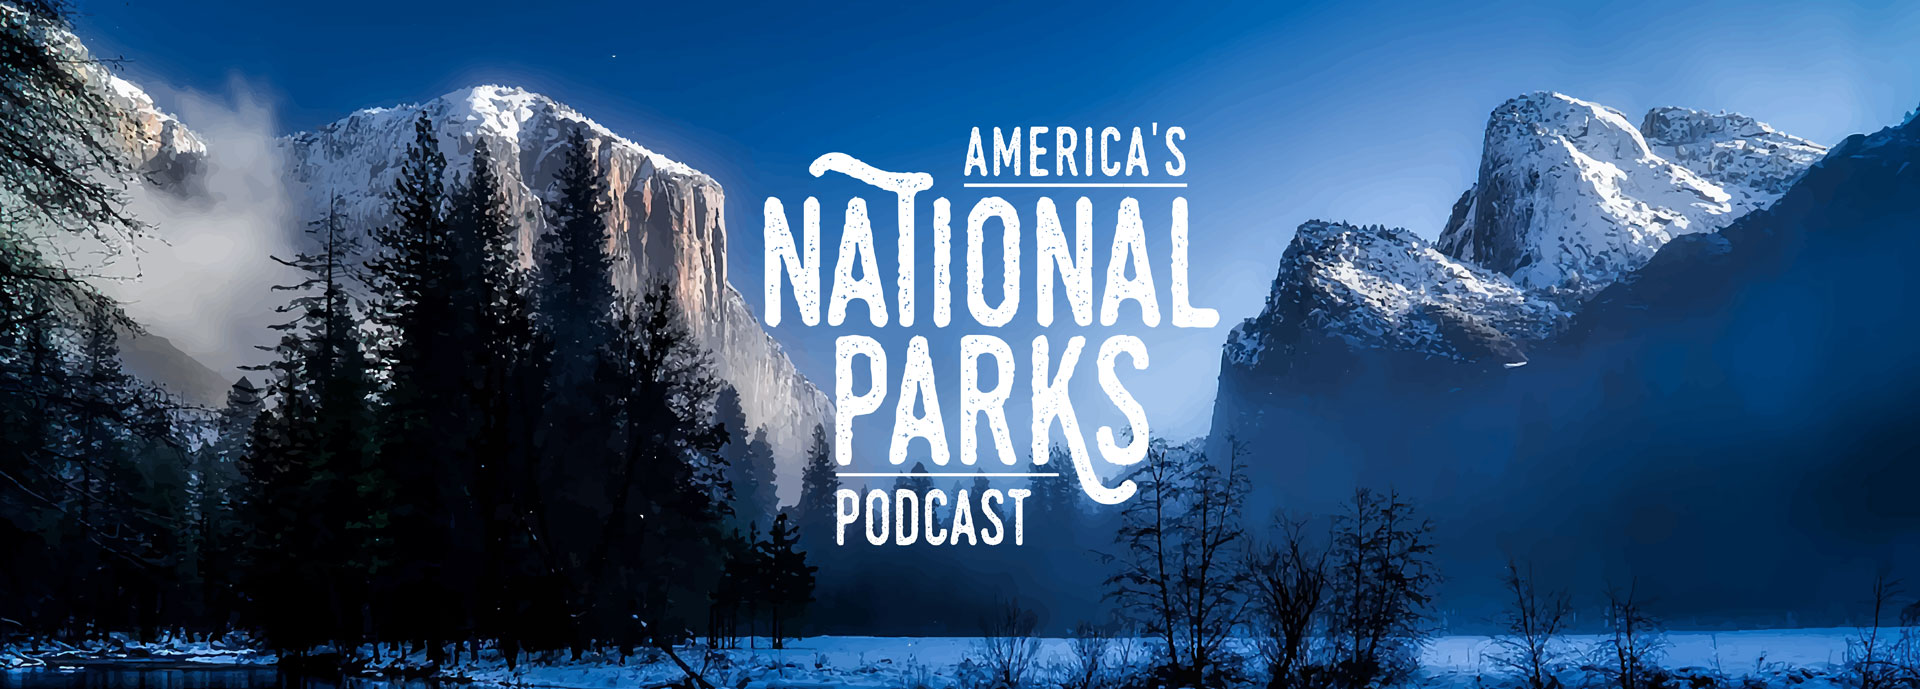 America's National Parks Podcast